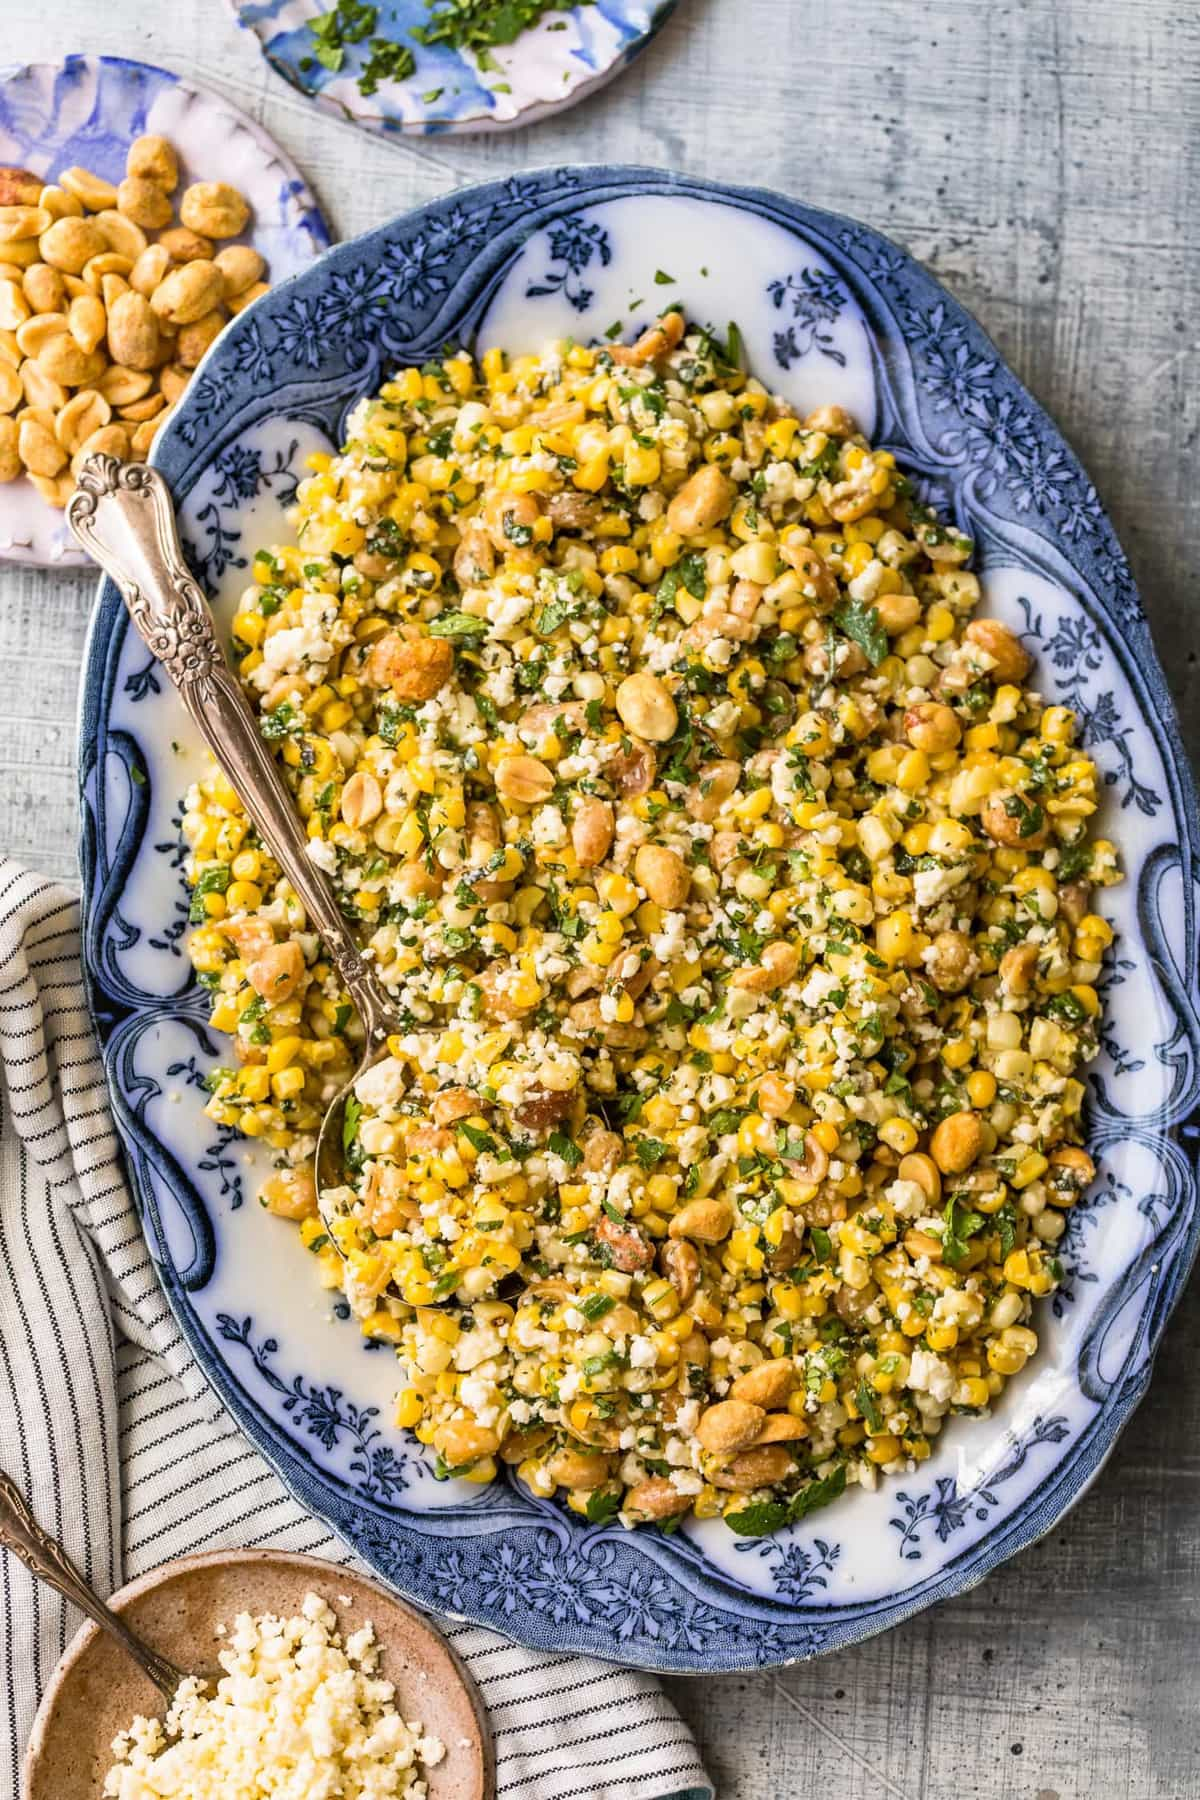 Grilled corn salad on a large serving plate with a spoon